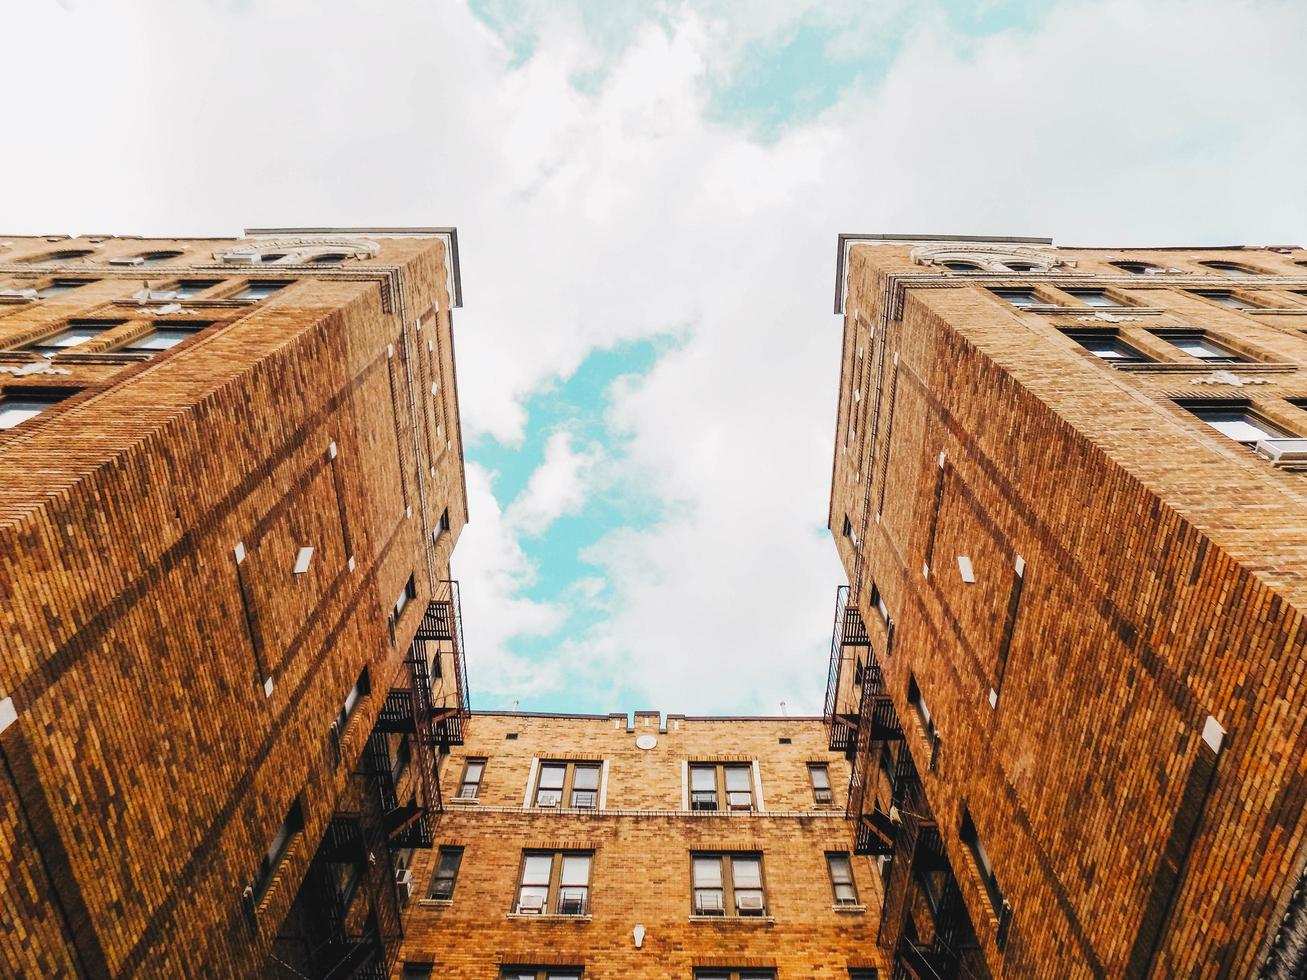 Brooklyn, NY, 2020 - Low-angle of a high-rise building photo